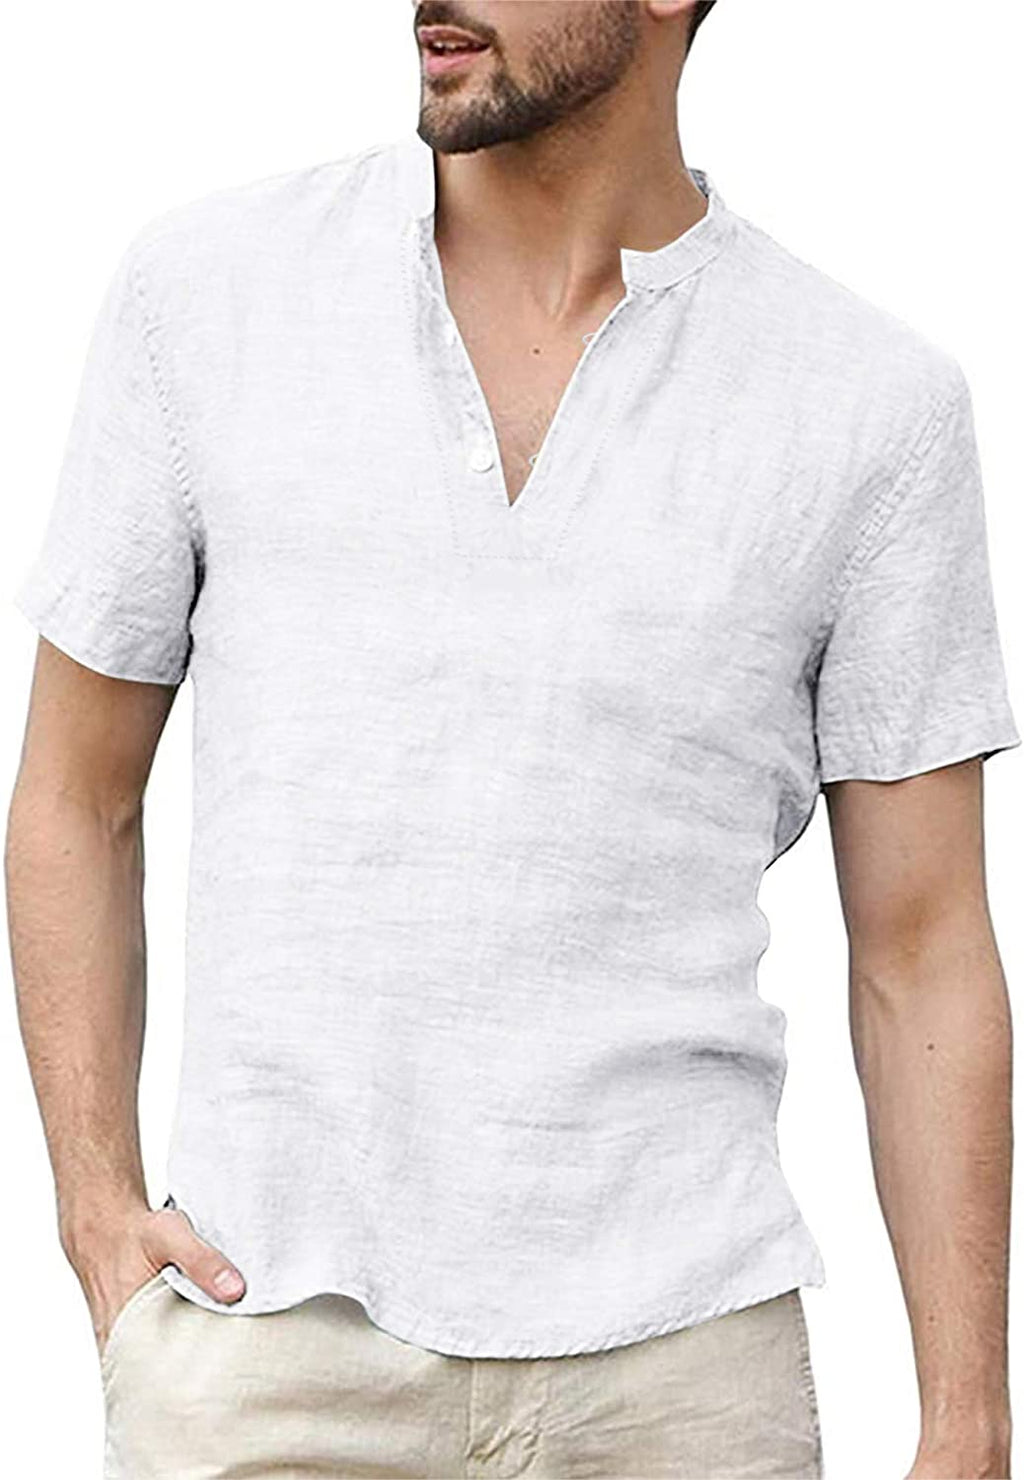 Mens Cotton Linen Henley Shirts Short Sleeve Loose Summer Beach Yoga Casual Shirt Tops